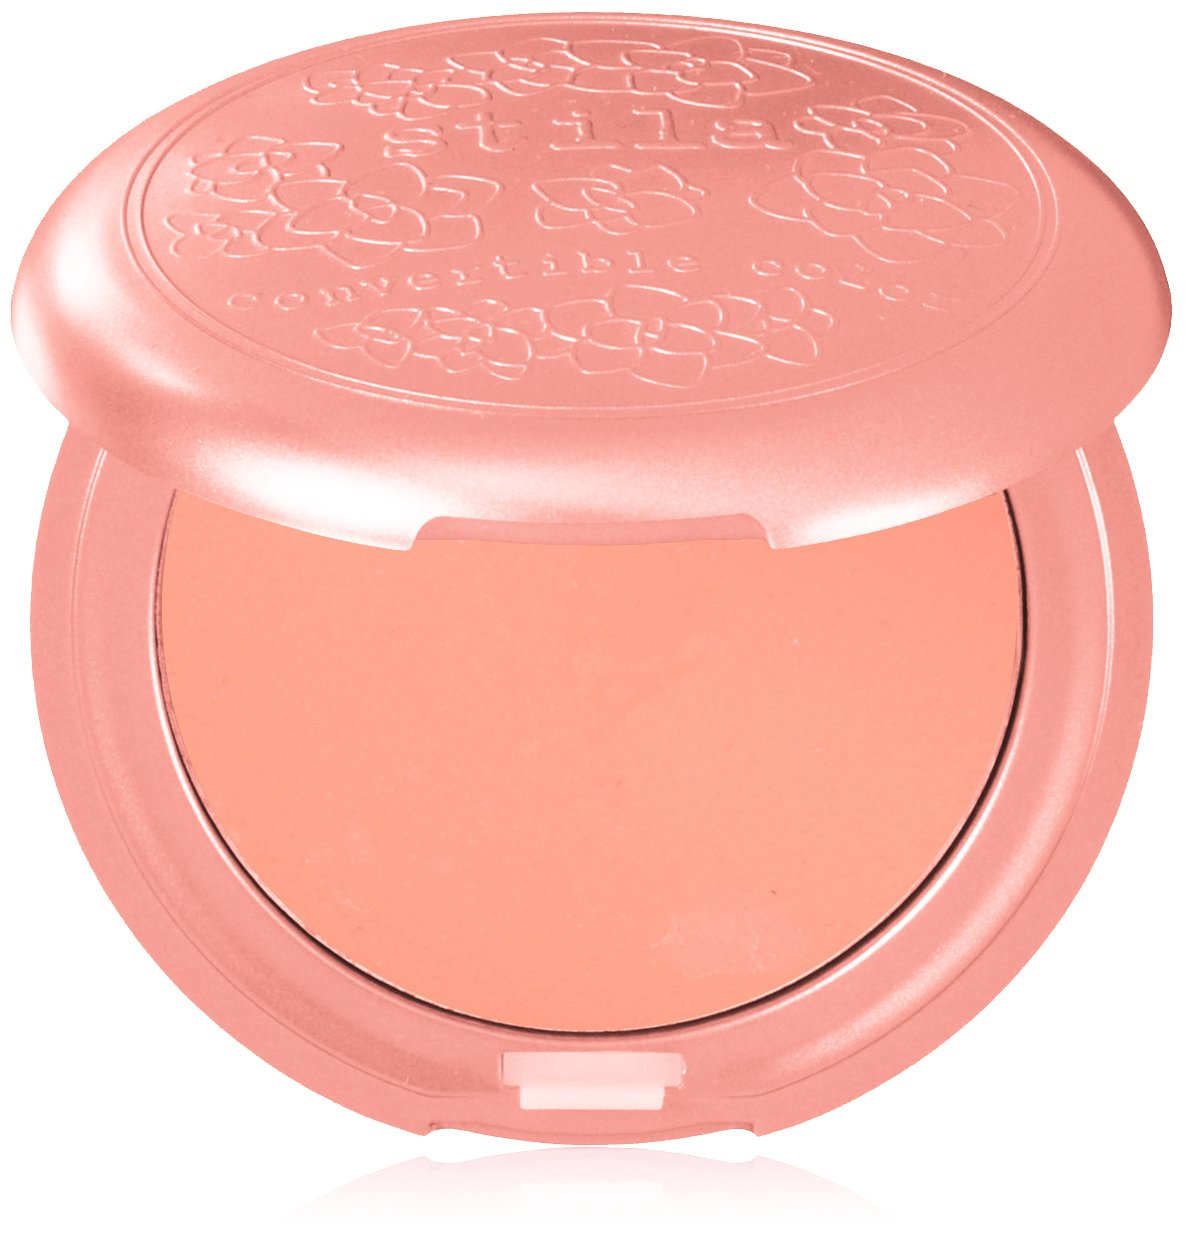 Stila Convertible Colour for Lips and Cheeks 4.25 g